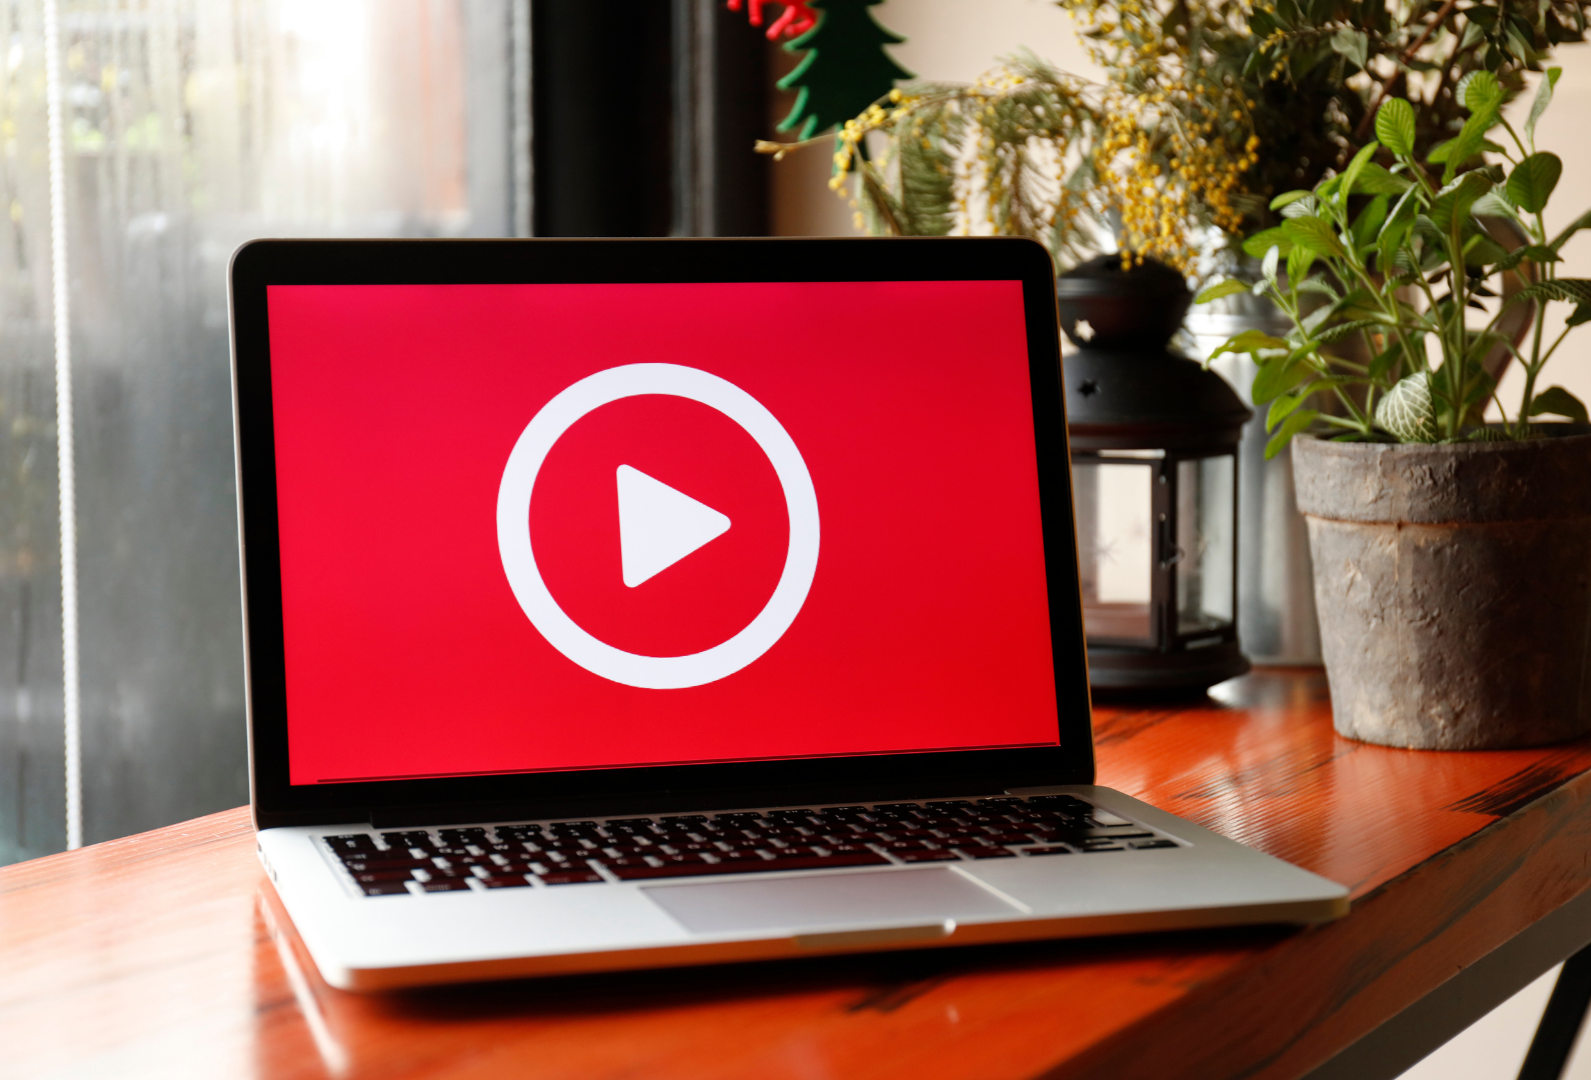 """White circle with a """"Play Video"""" symbol on red background on laptop computer screen"""